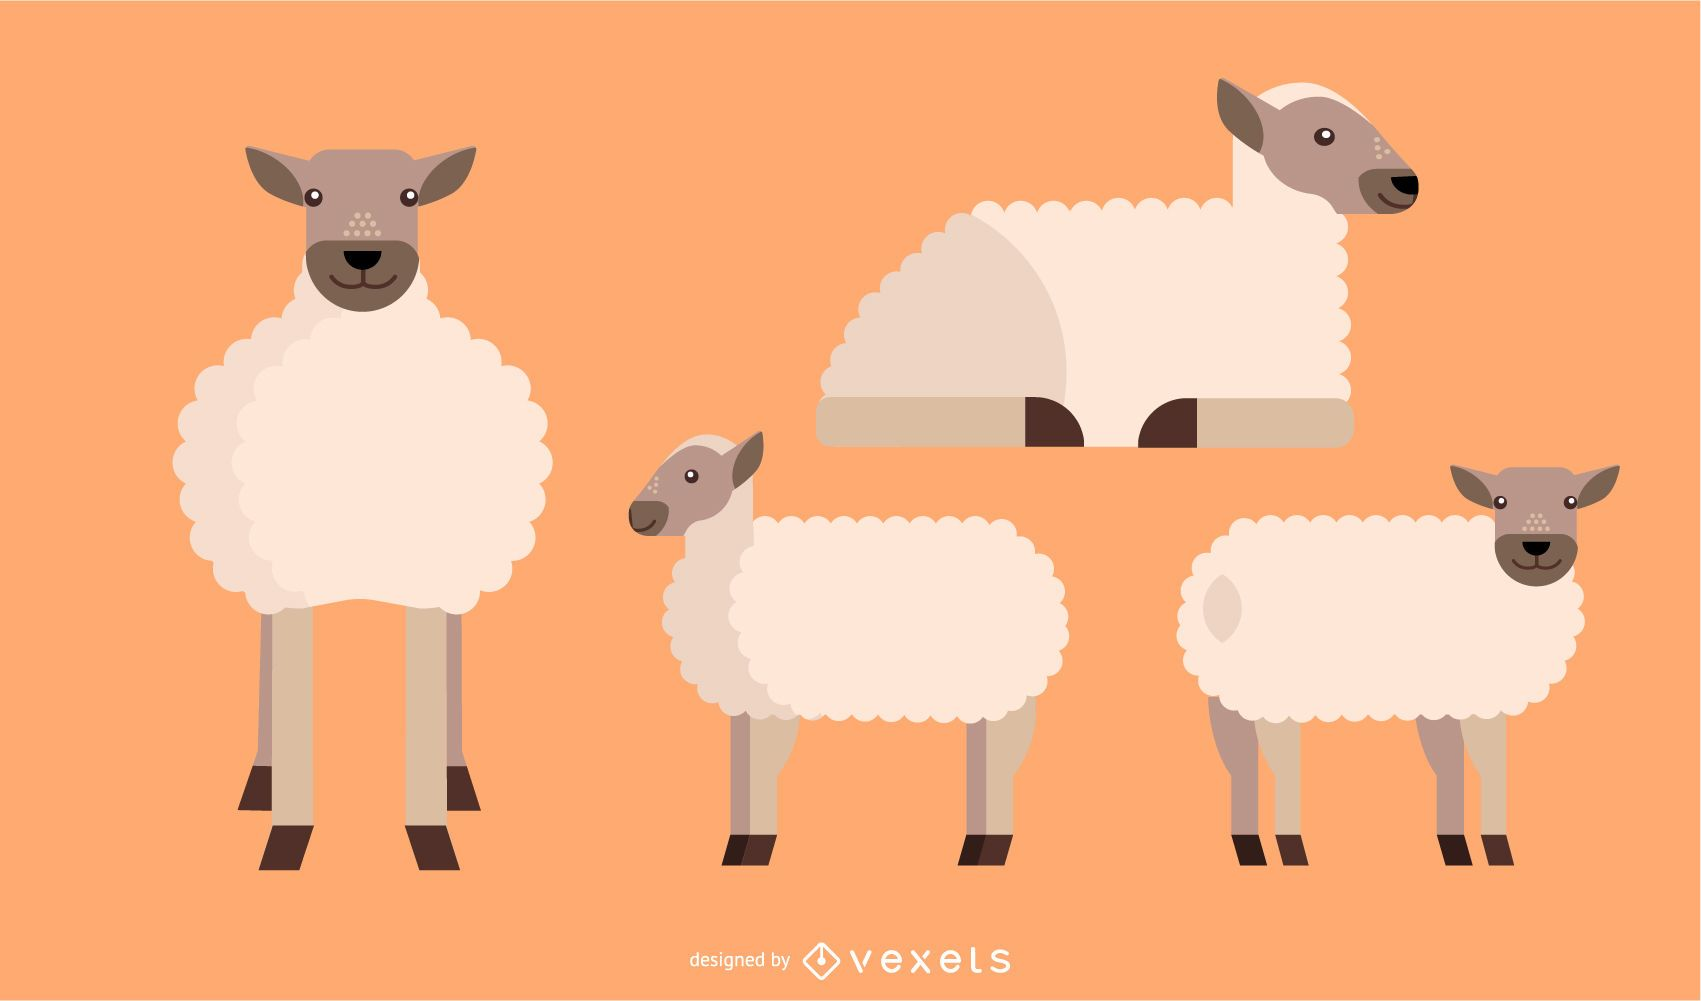 Sheep Flat Rounded Geometric Vector Design